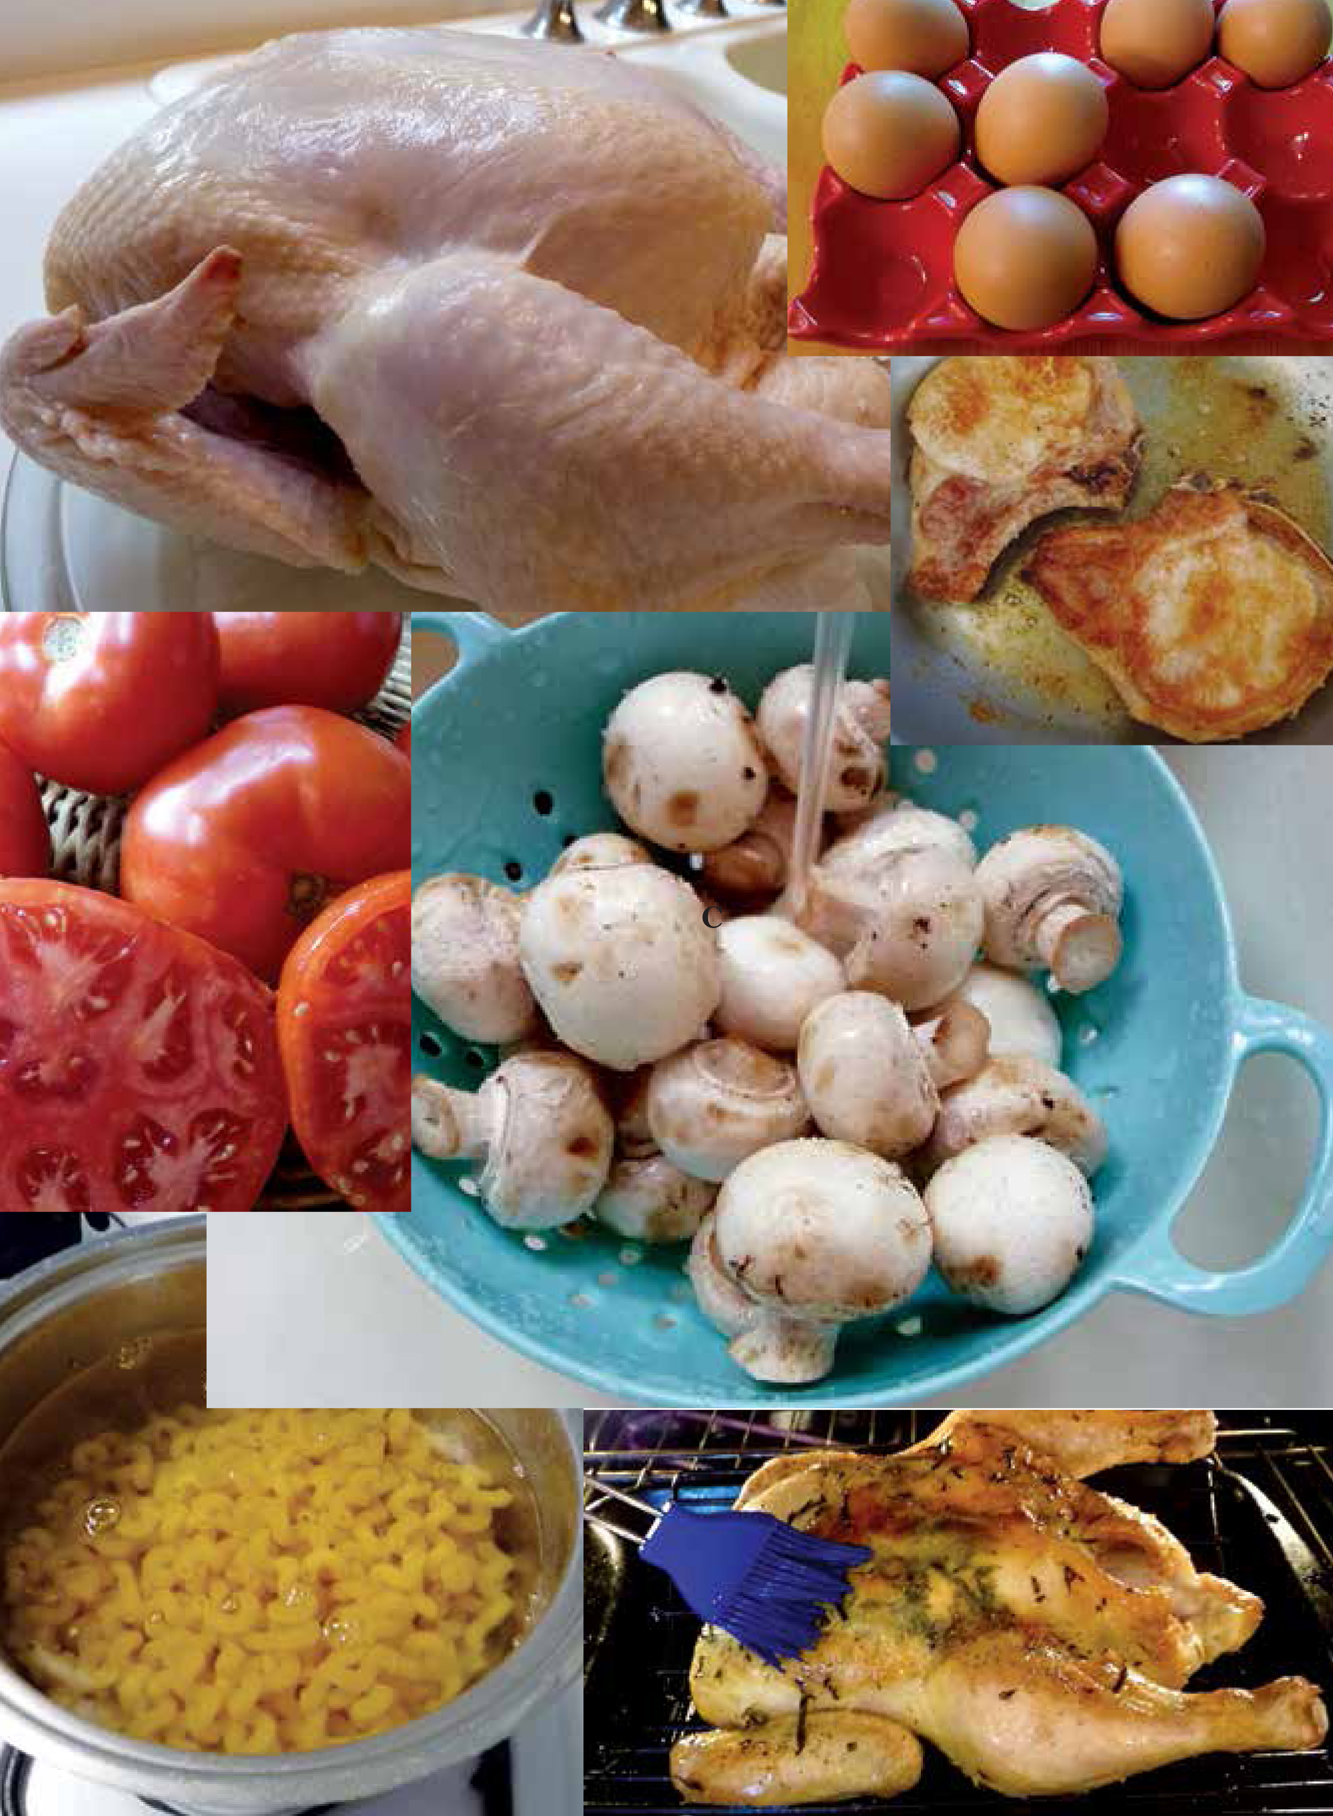 Myths About Chicken, Eggs And Other Foods Busted!